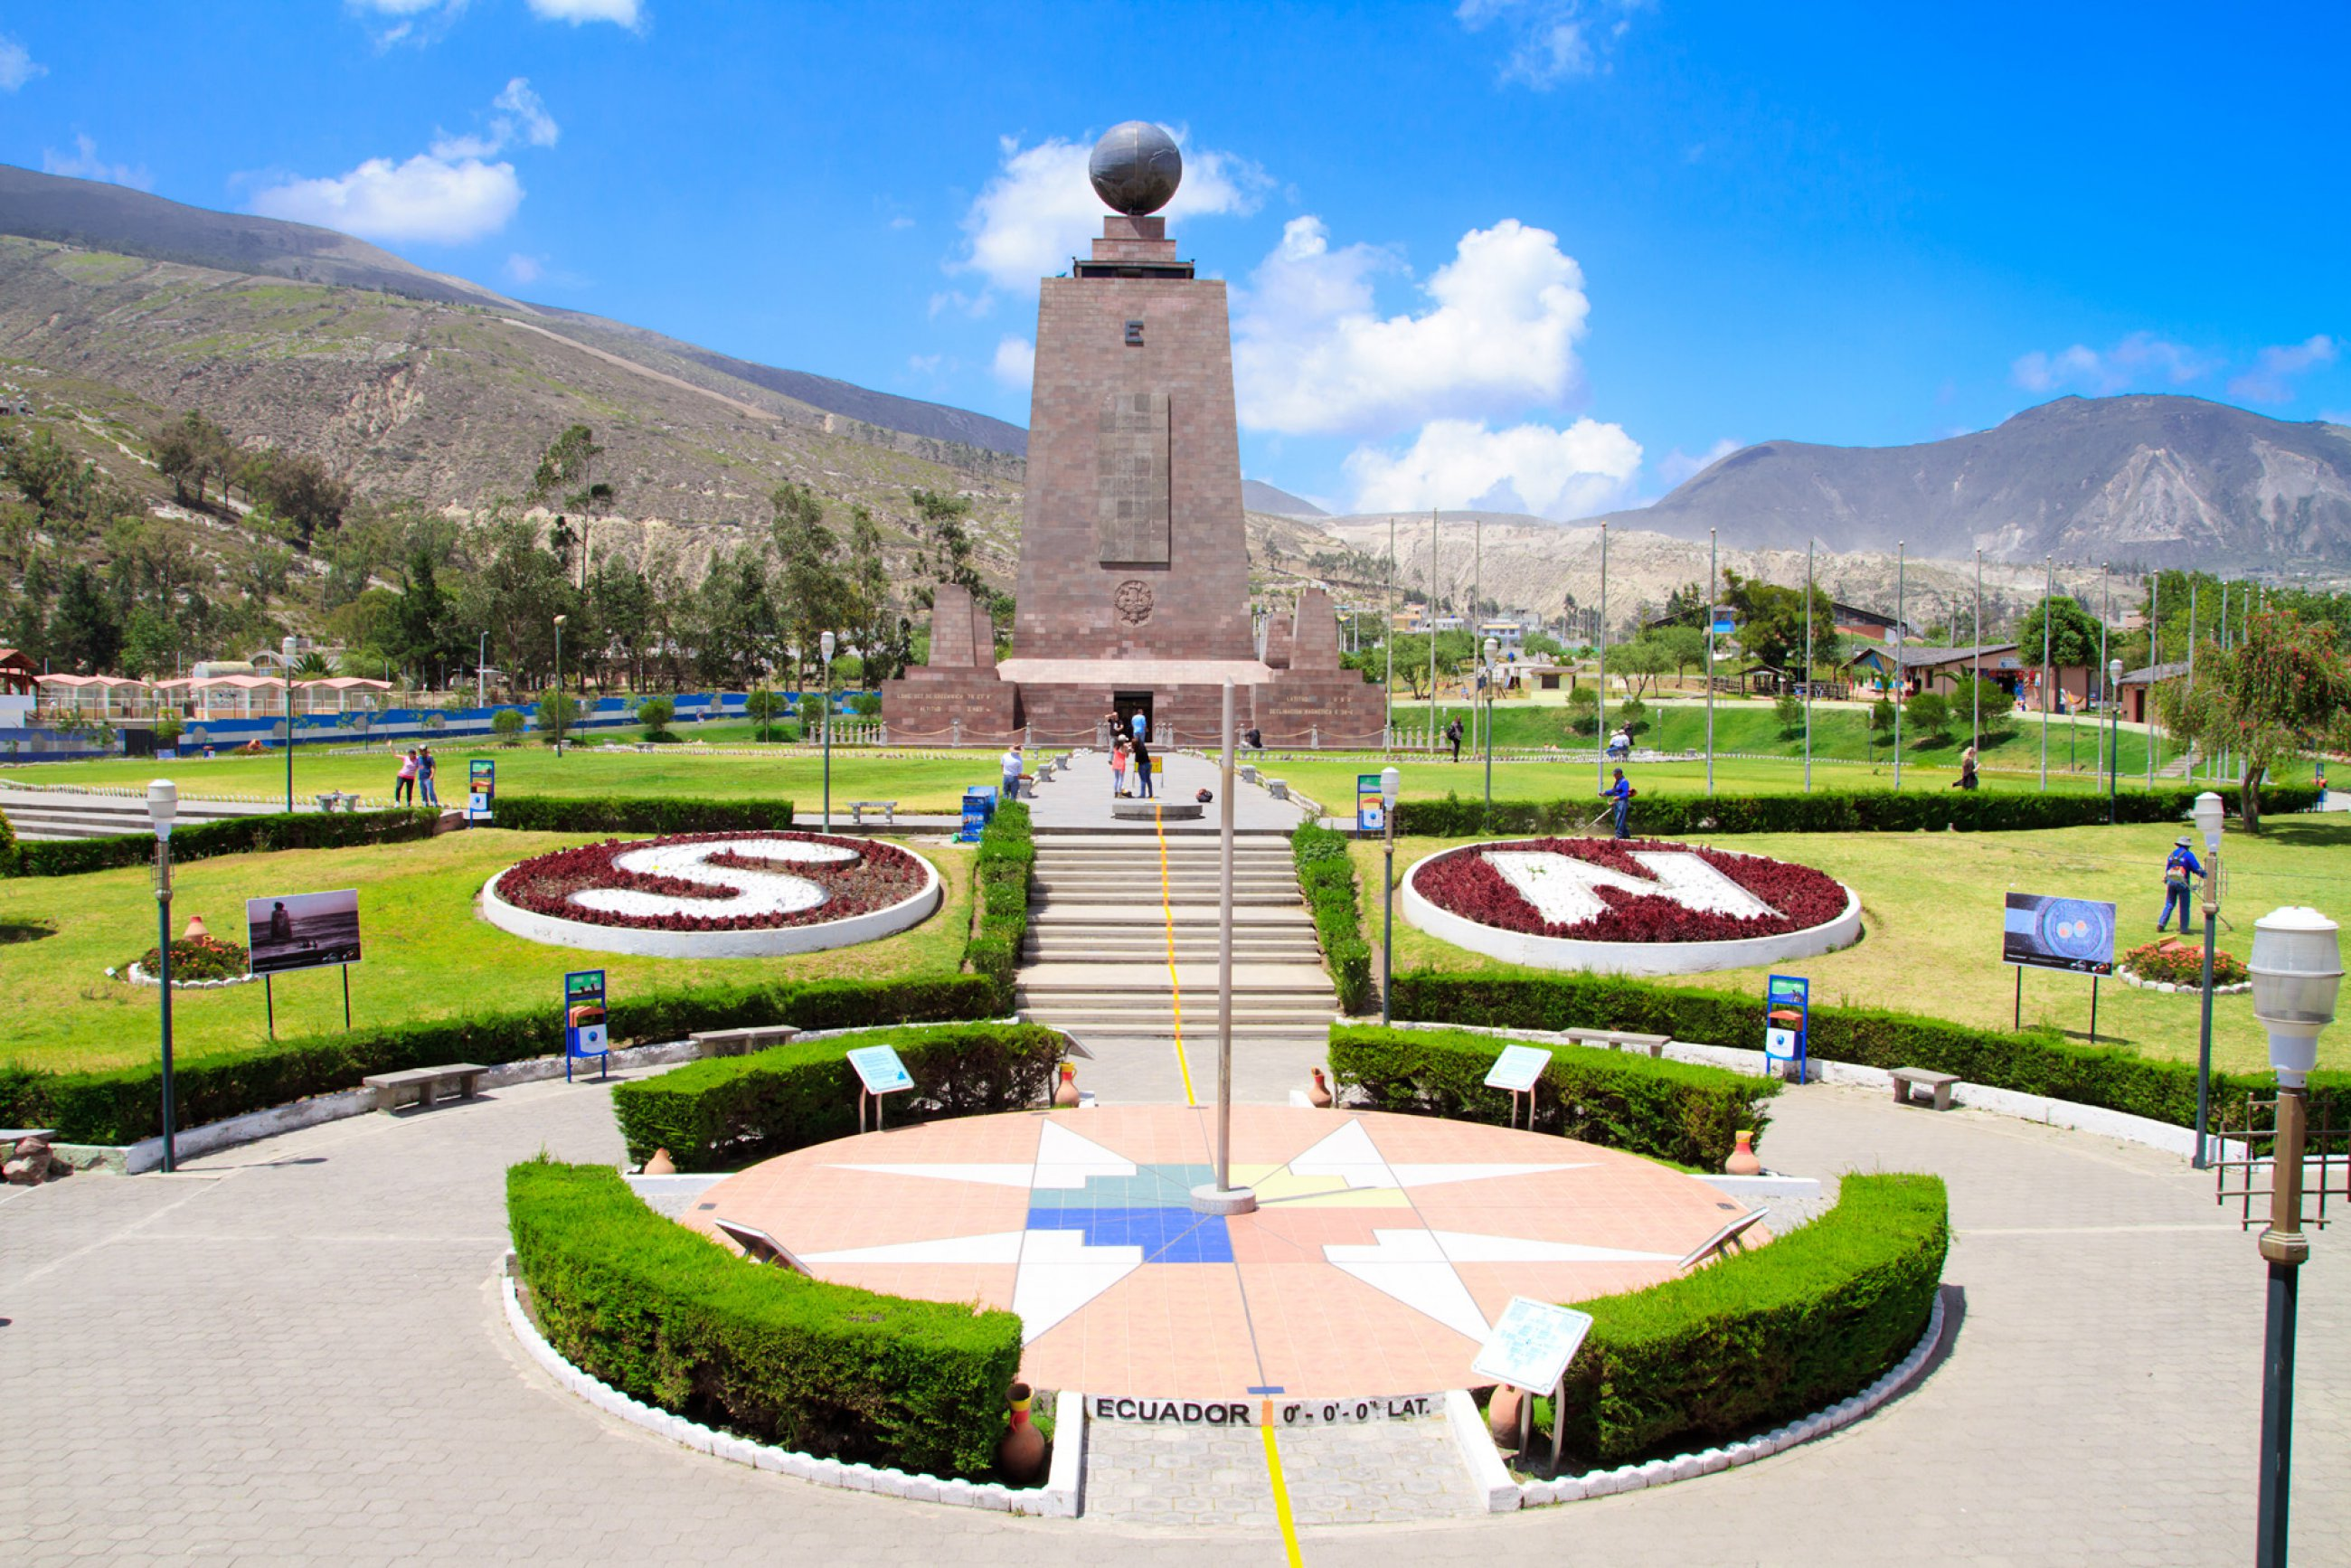 https://bubo.sk/uploads/galleries/16334/ekvador-mitad-del-mundo.jpg